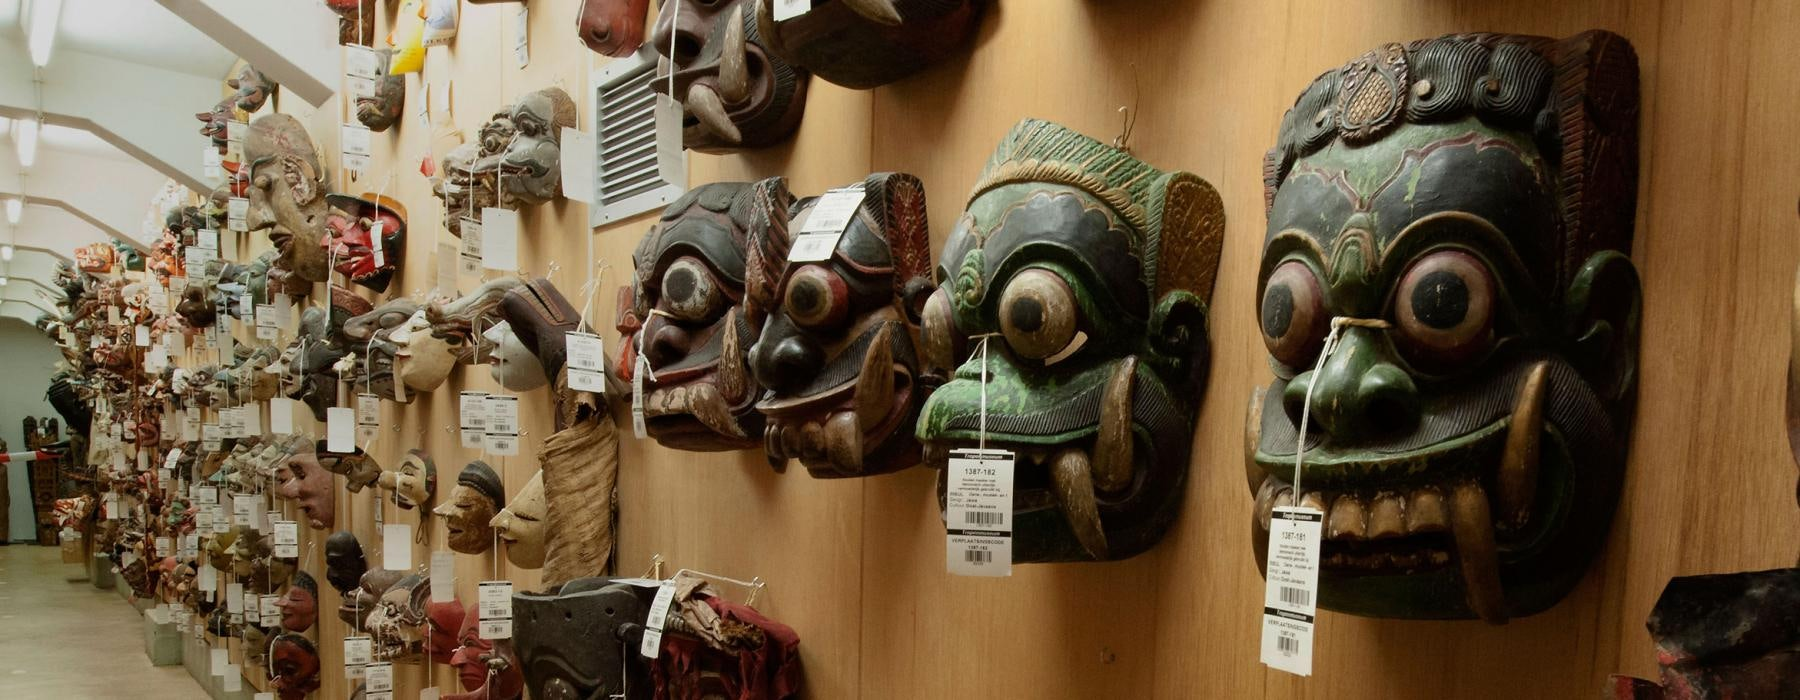 historic masks hanging at Wereldmuseum